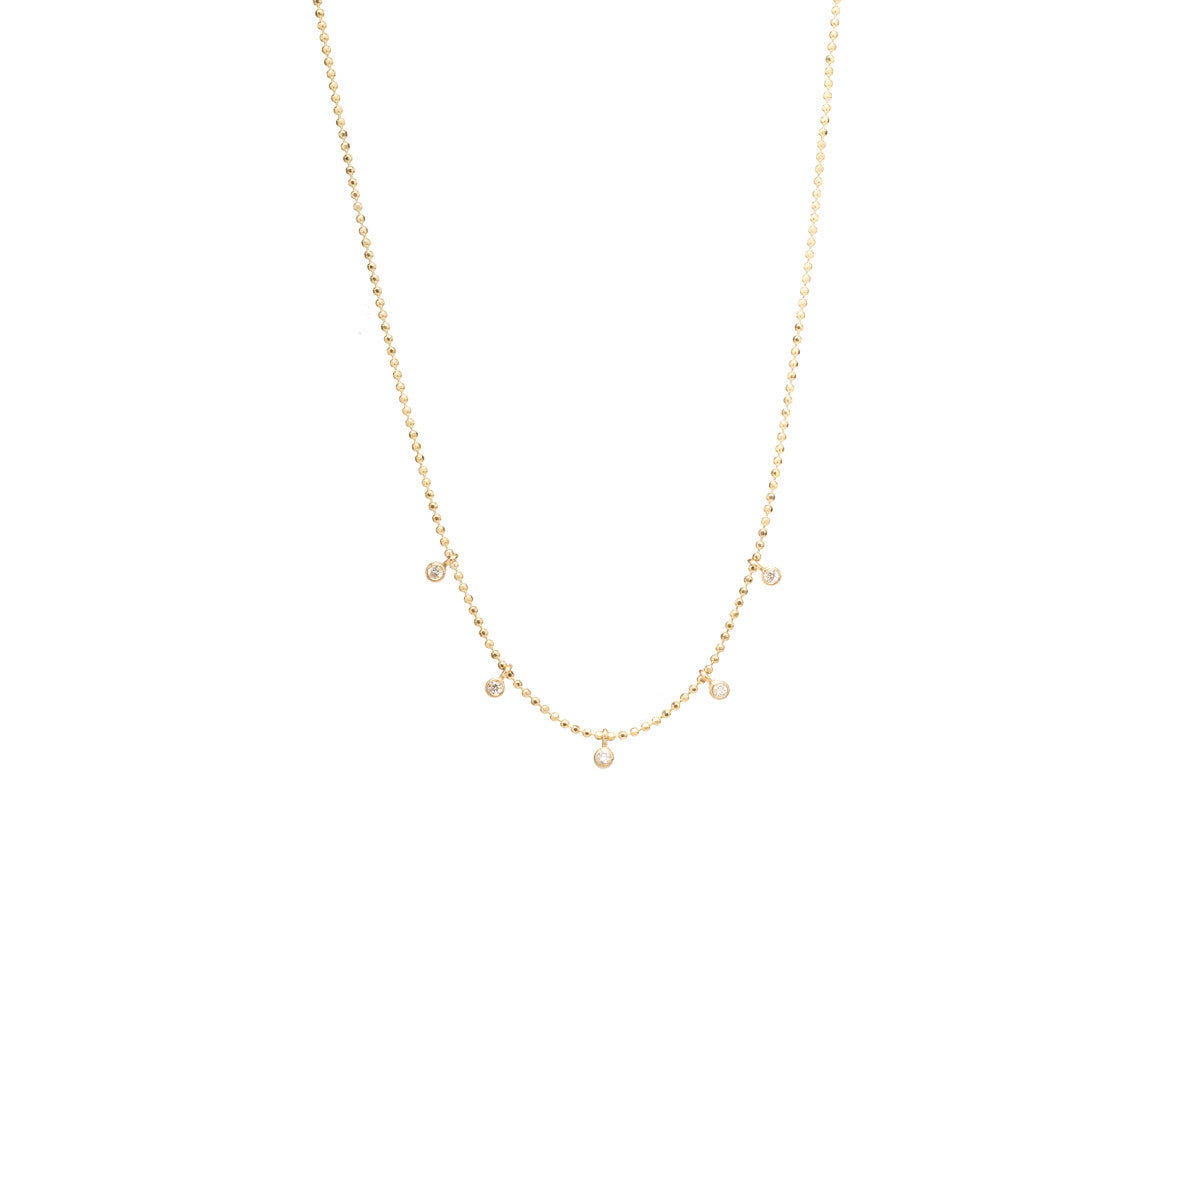 Zoë Chicco 14kt Yellow Gold 5 Tiny White Diamonds Dangling Necklace